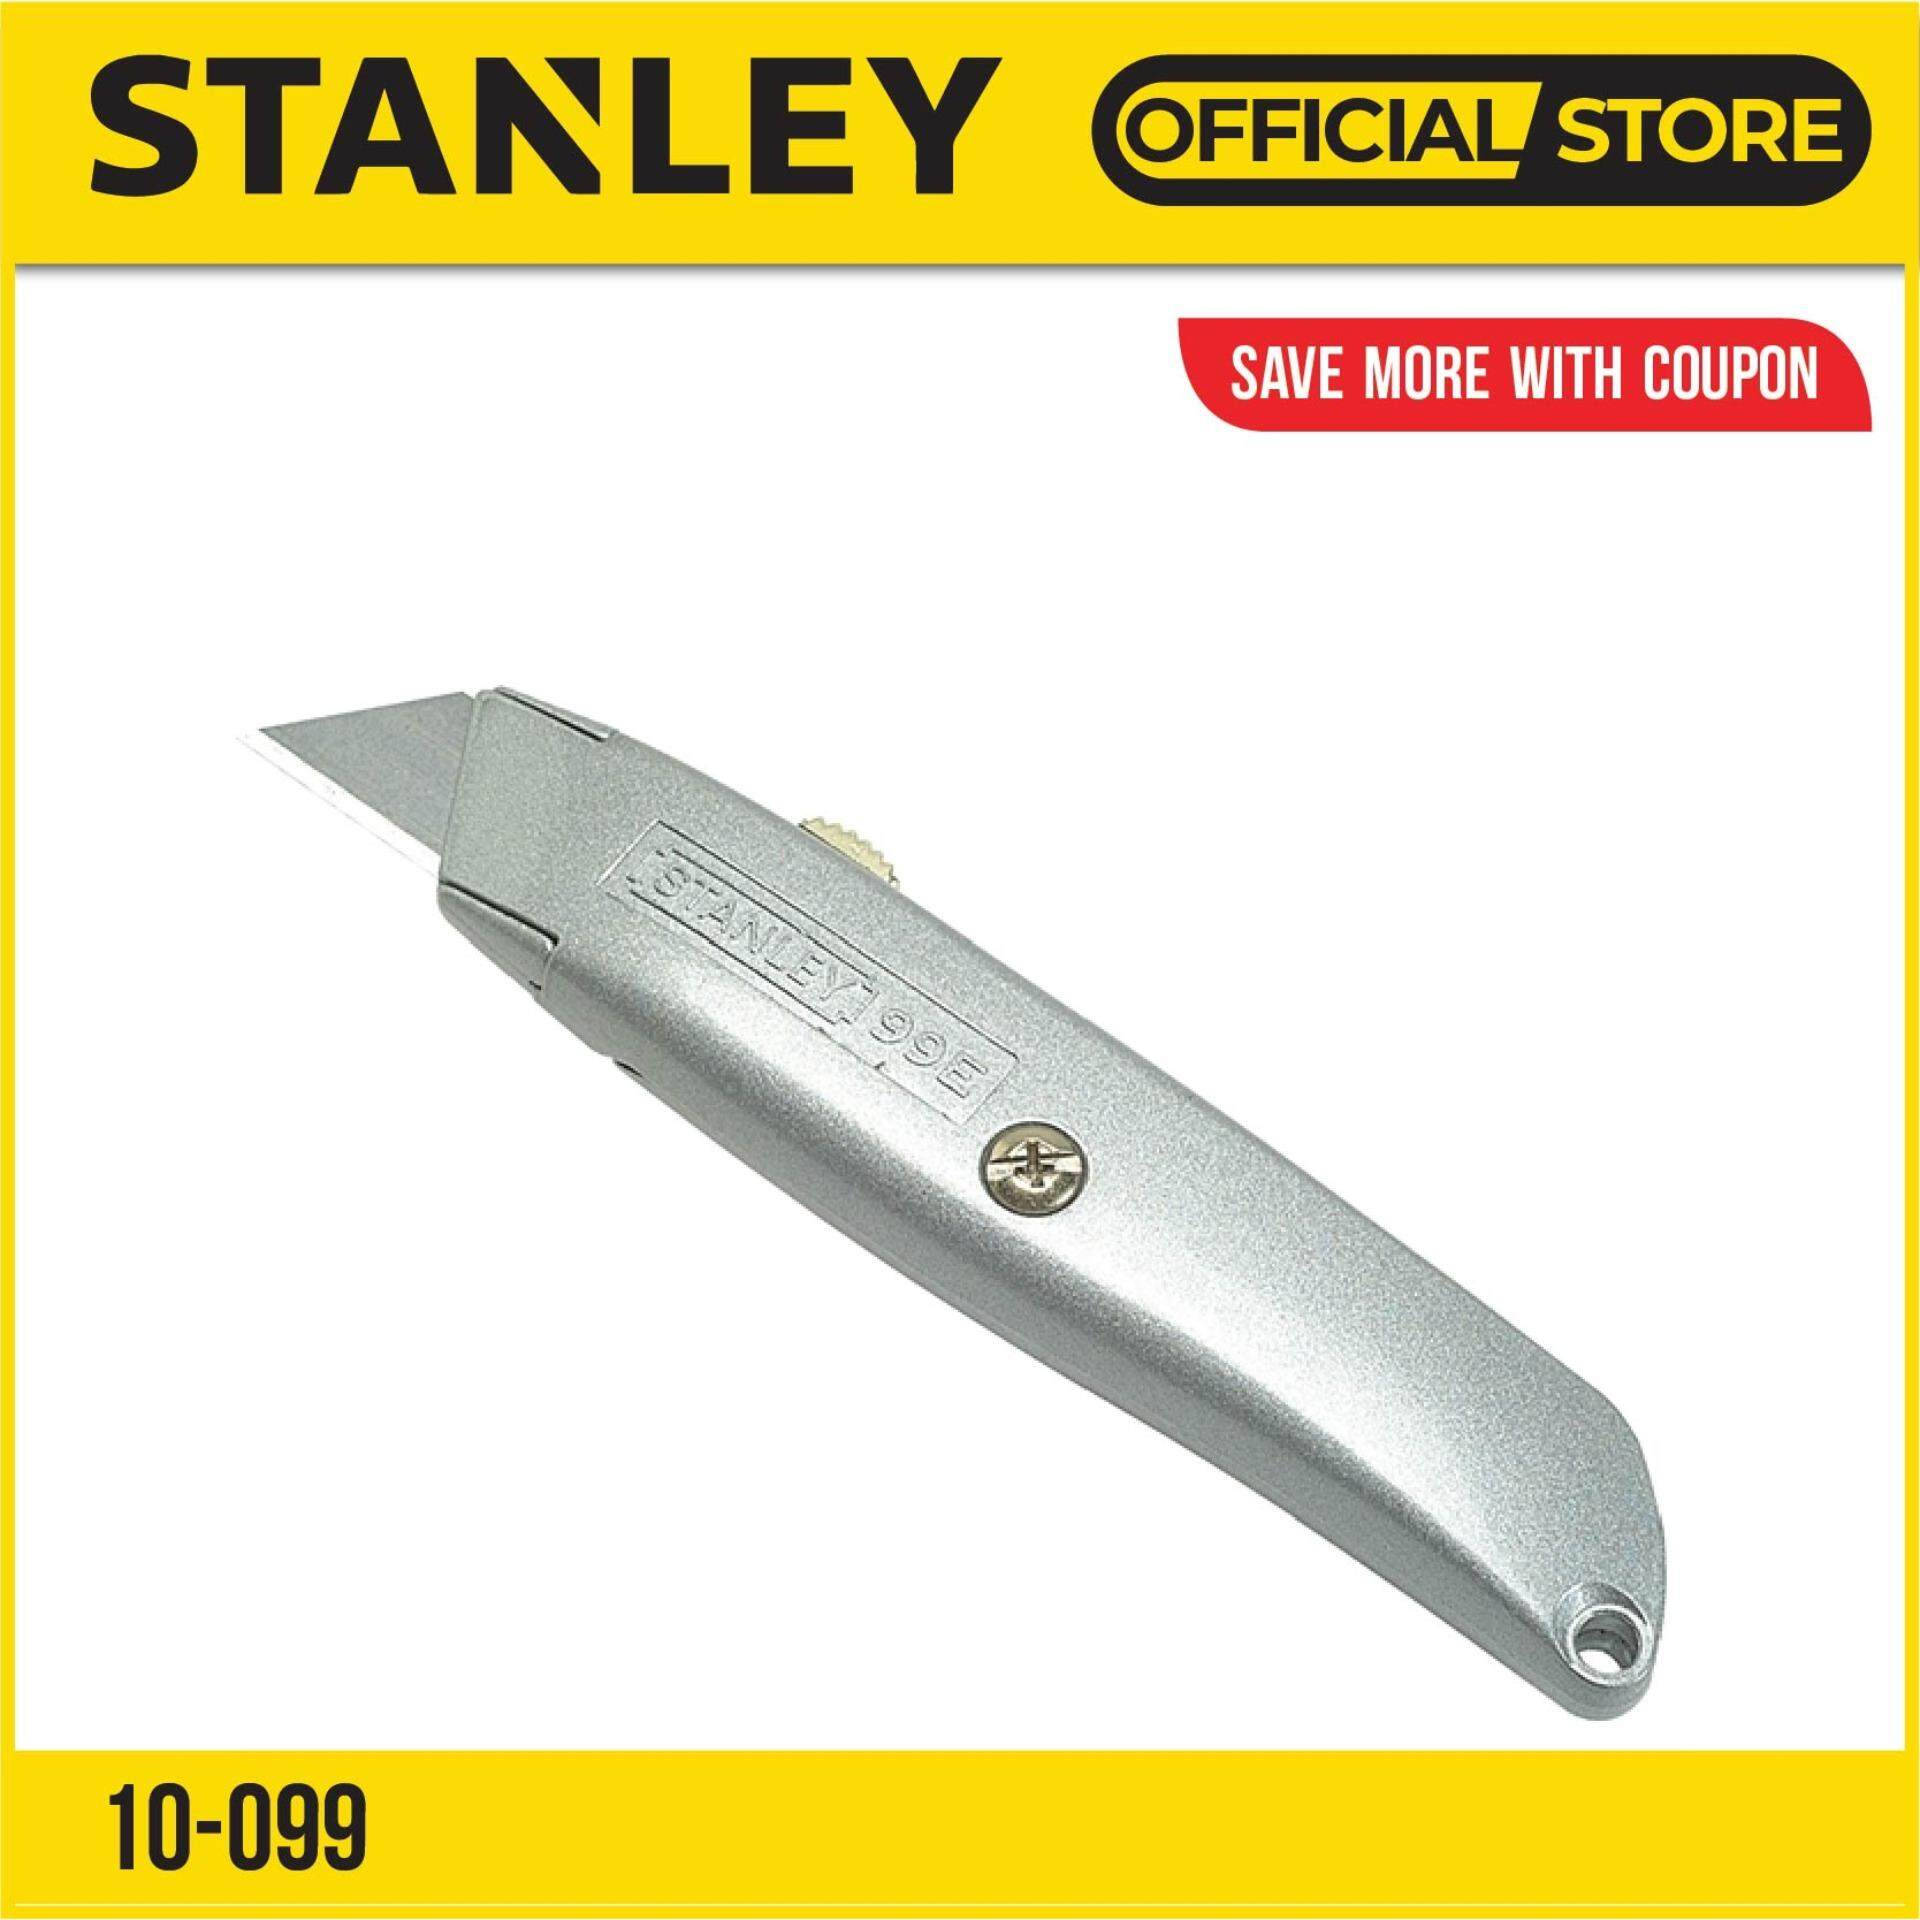 Stanley 10-099 Classic 99 Retractable Utility Cutter